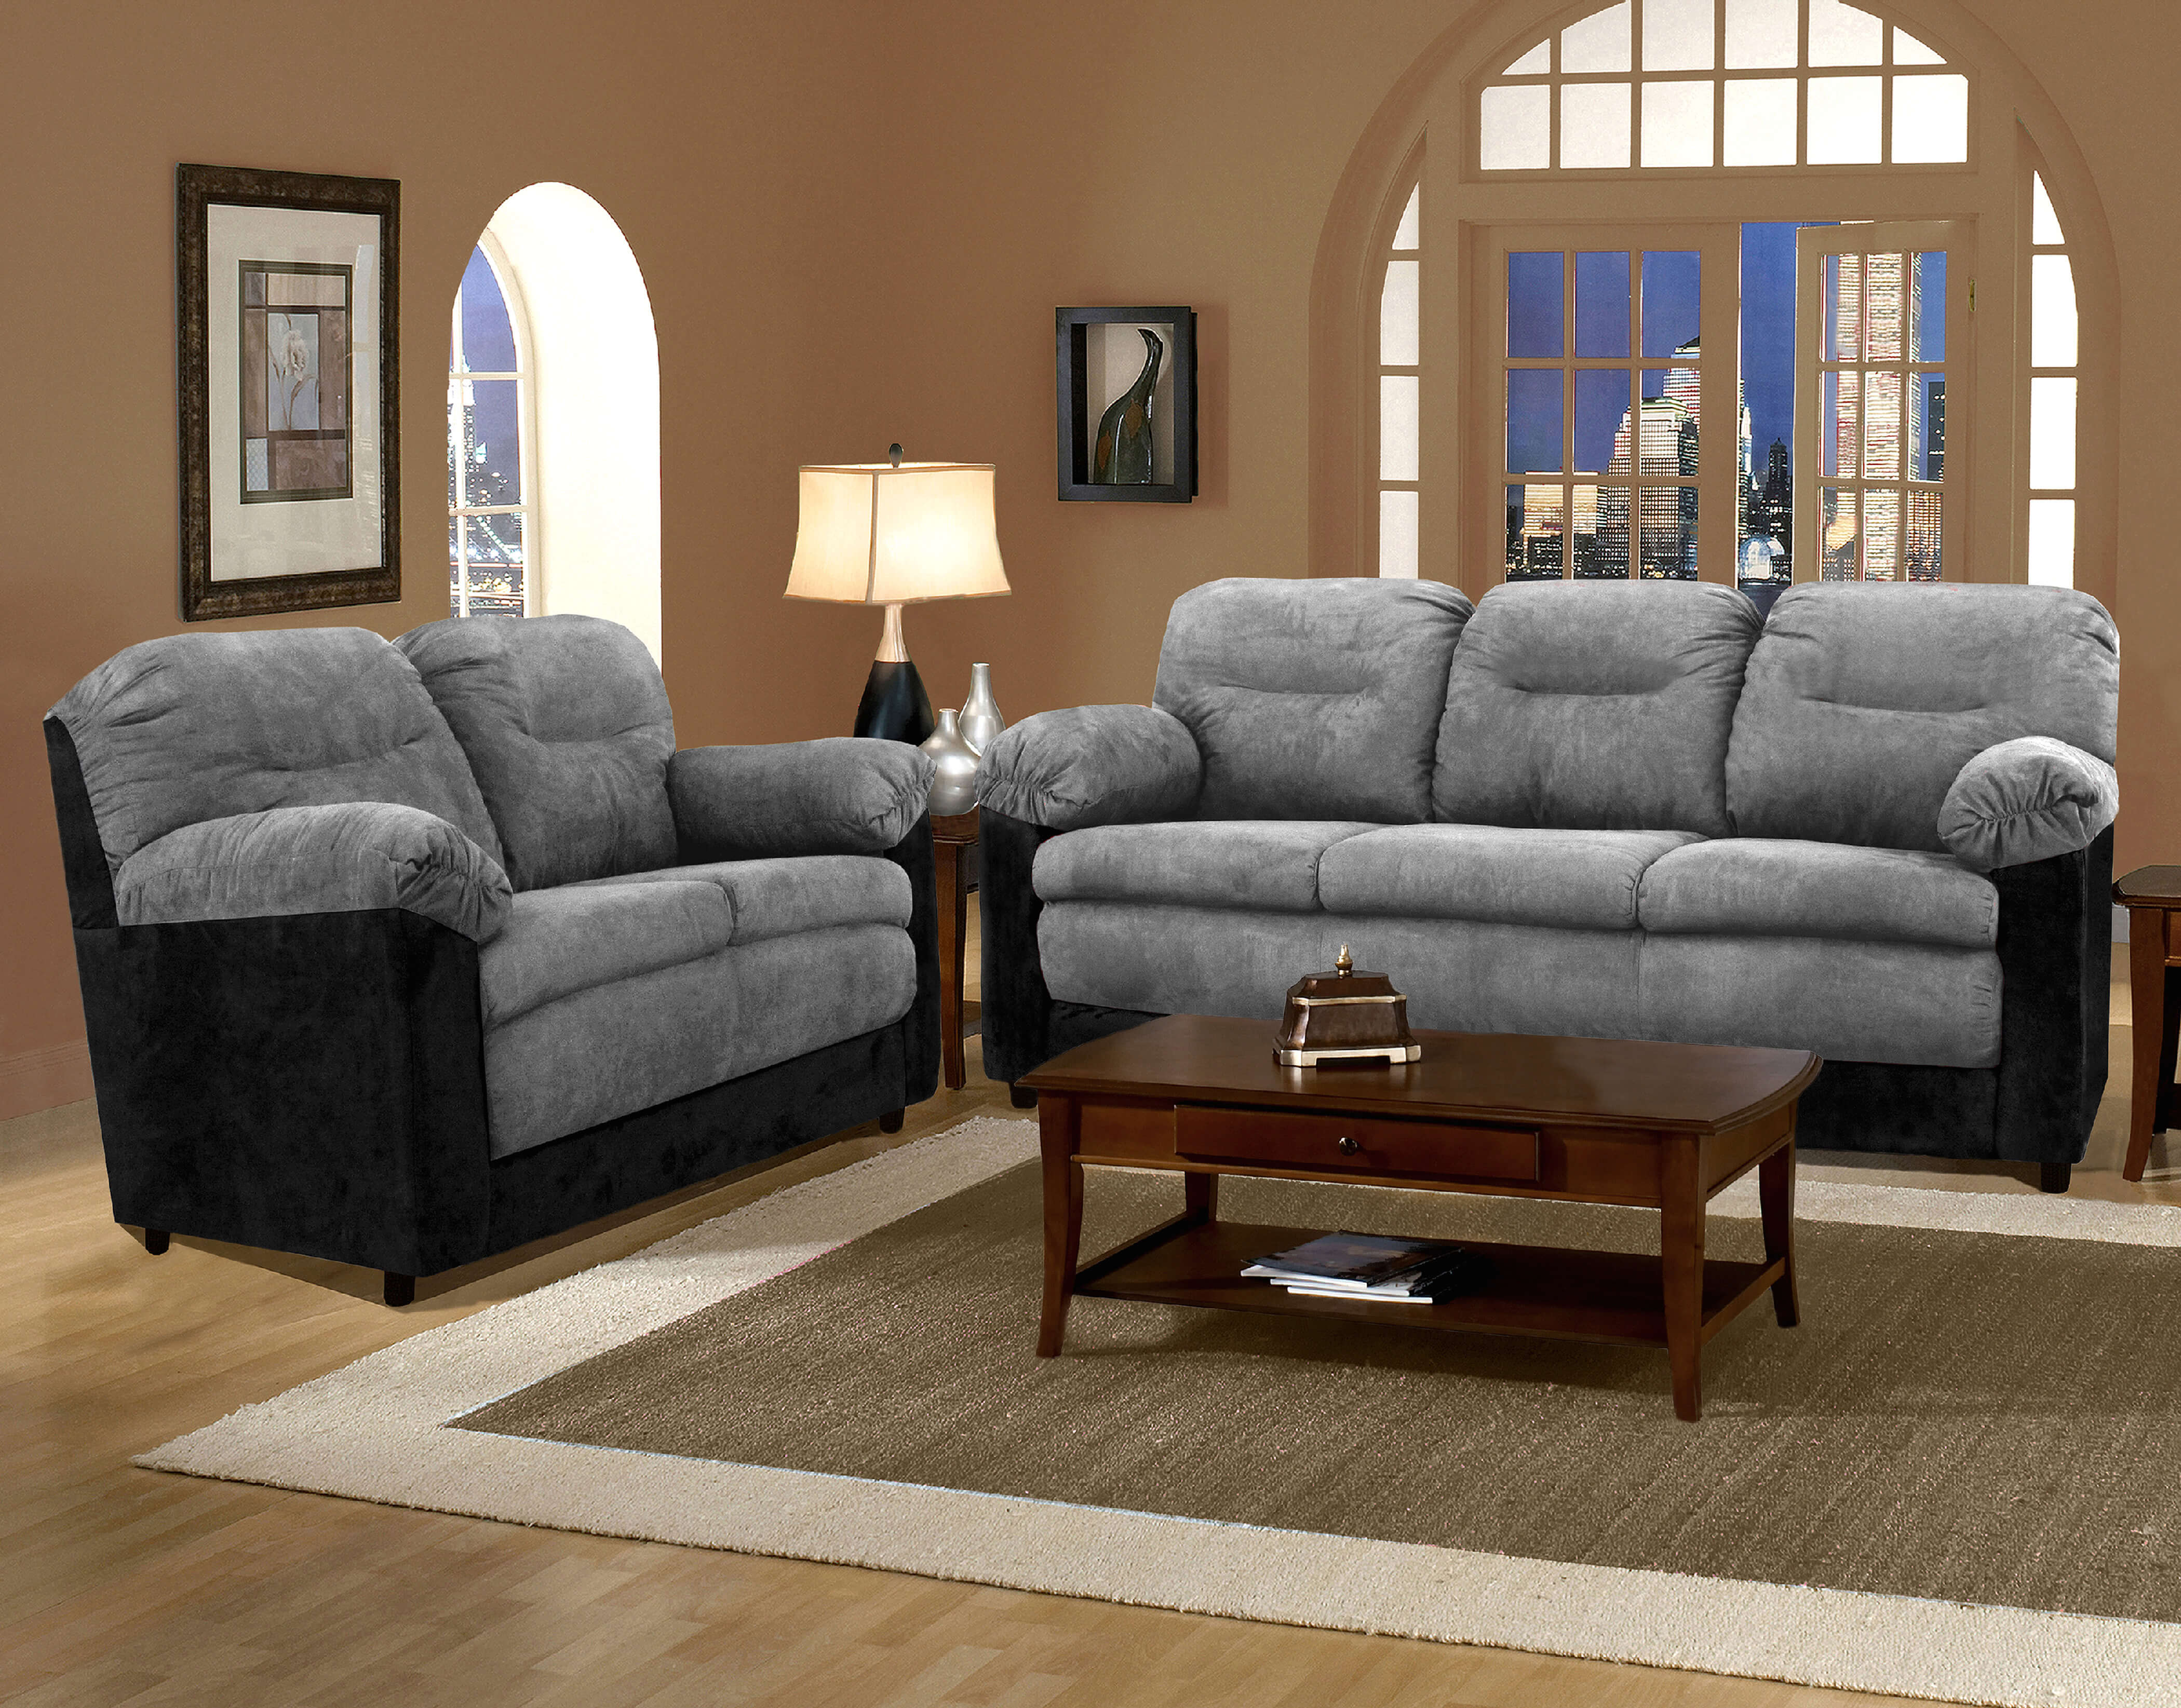 Black sofa and loveseat set sofa loveseat and chair set 28 for Black living room set